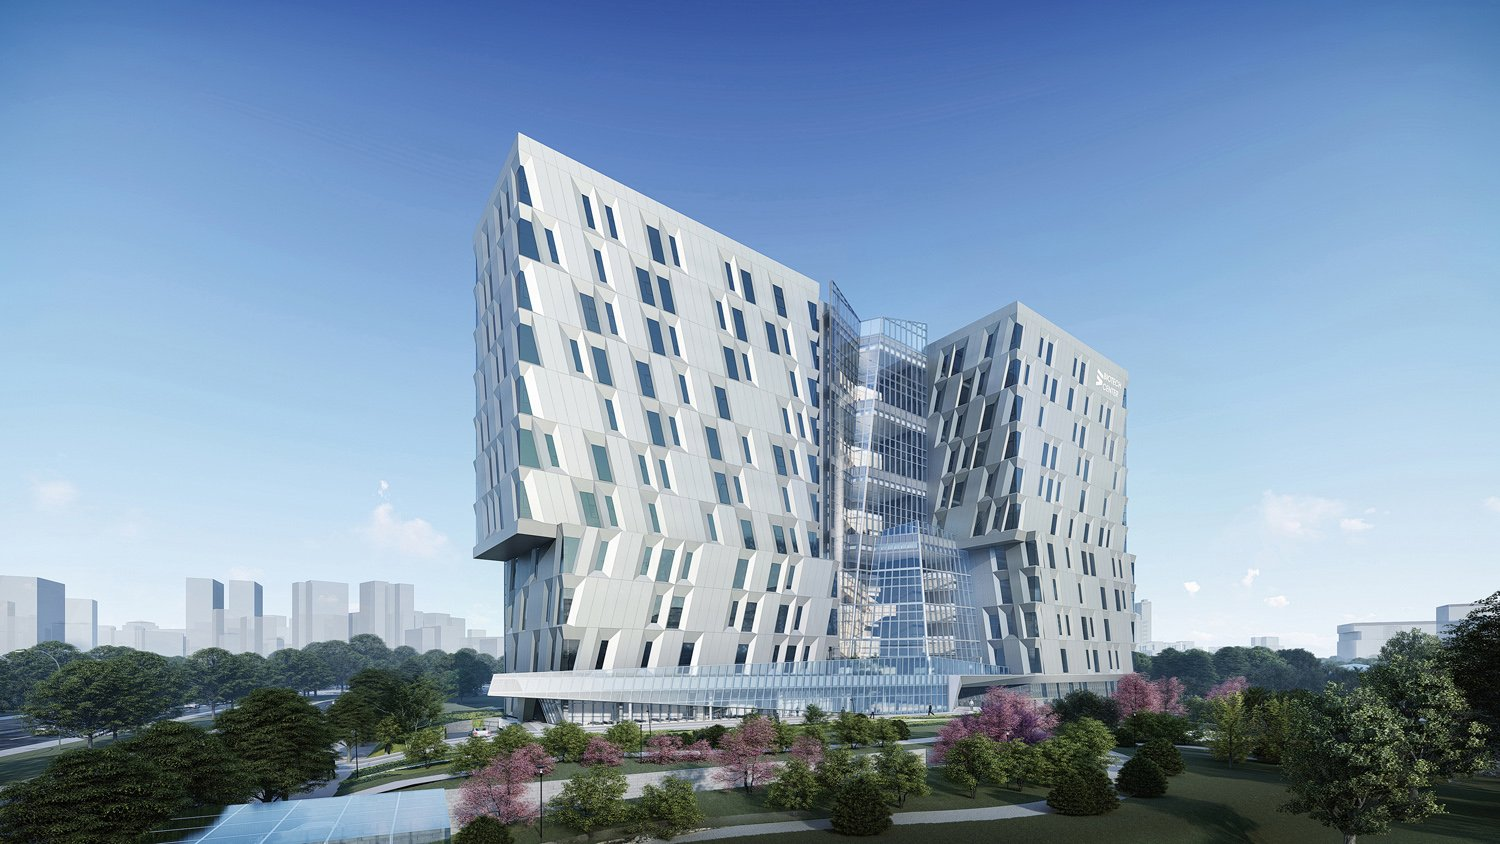 the center acts as a beacon for the entire science park JJP